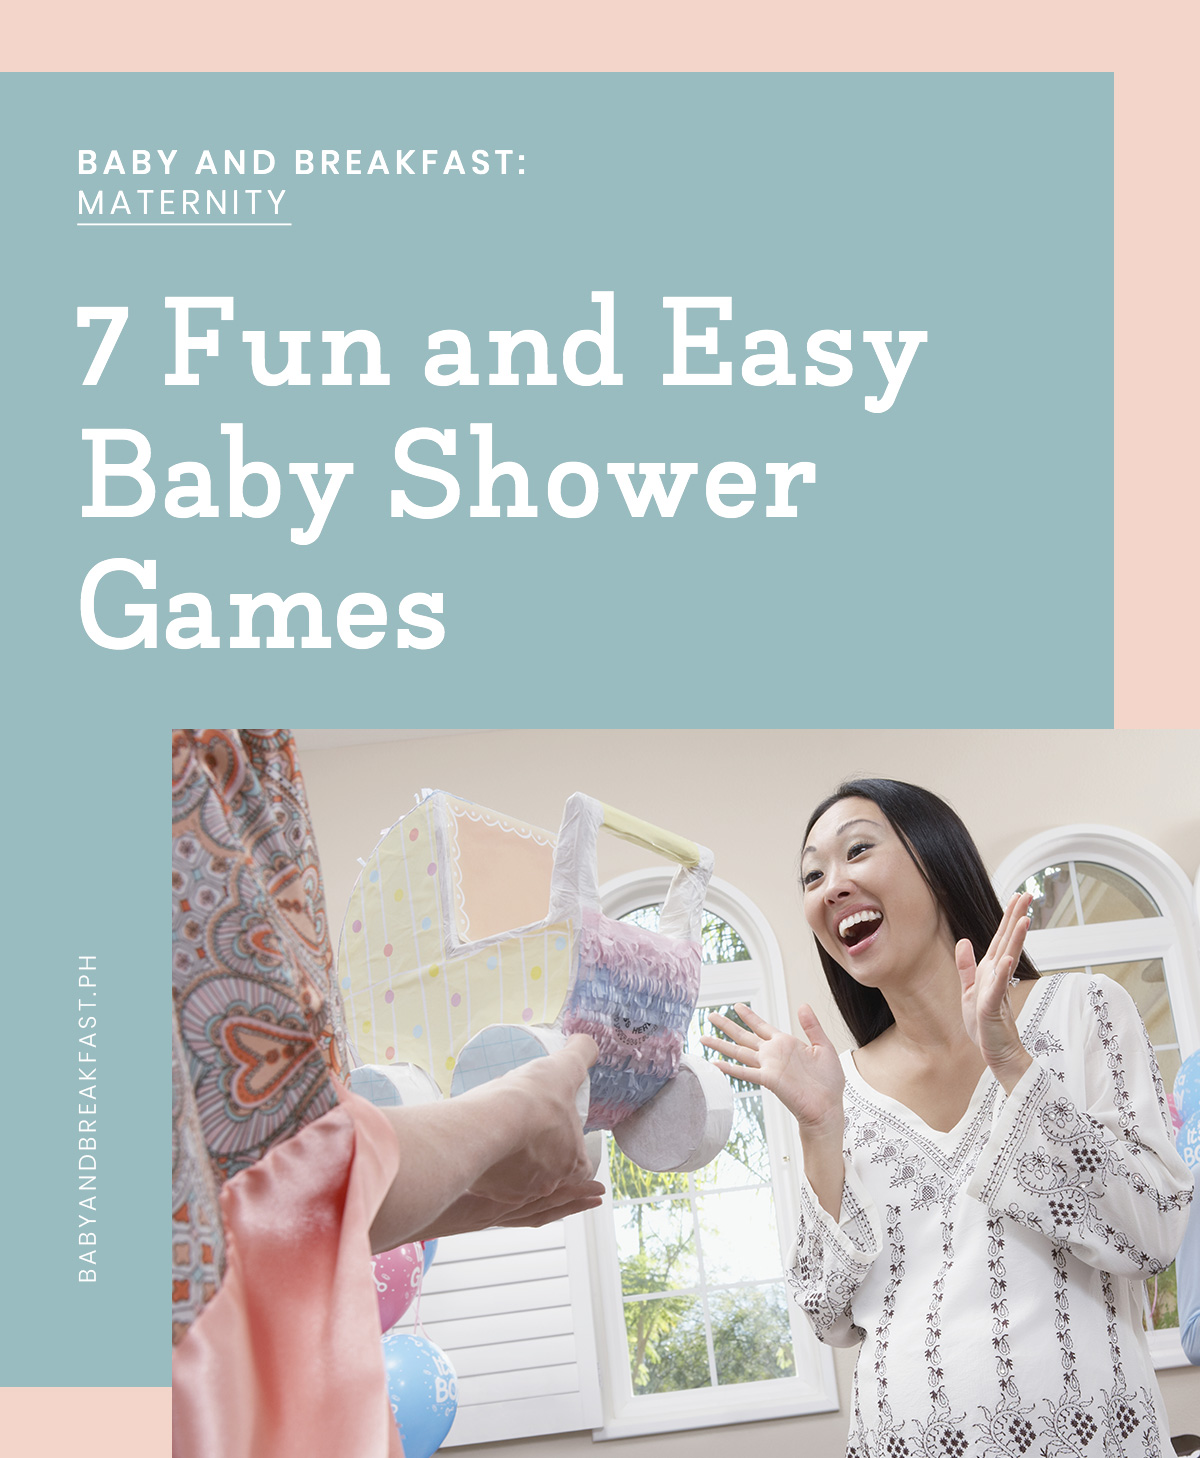 Baby and Breakfast: Maternity 7 Fun and Easy Baby Shower Games